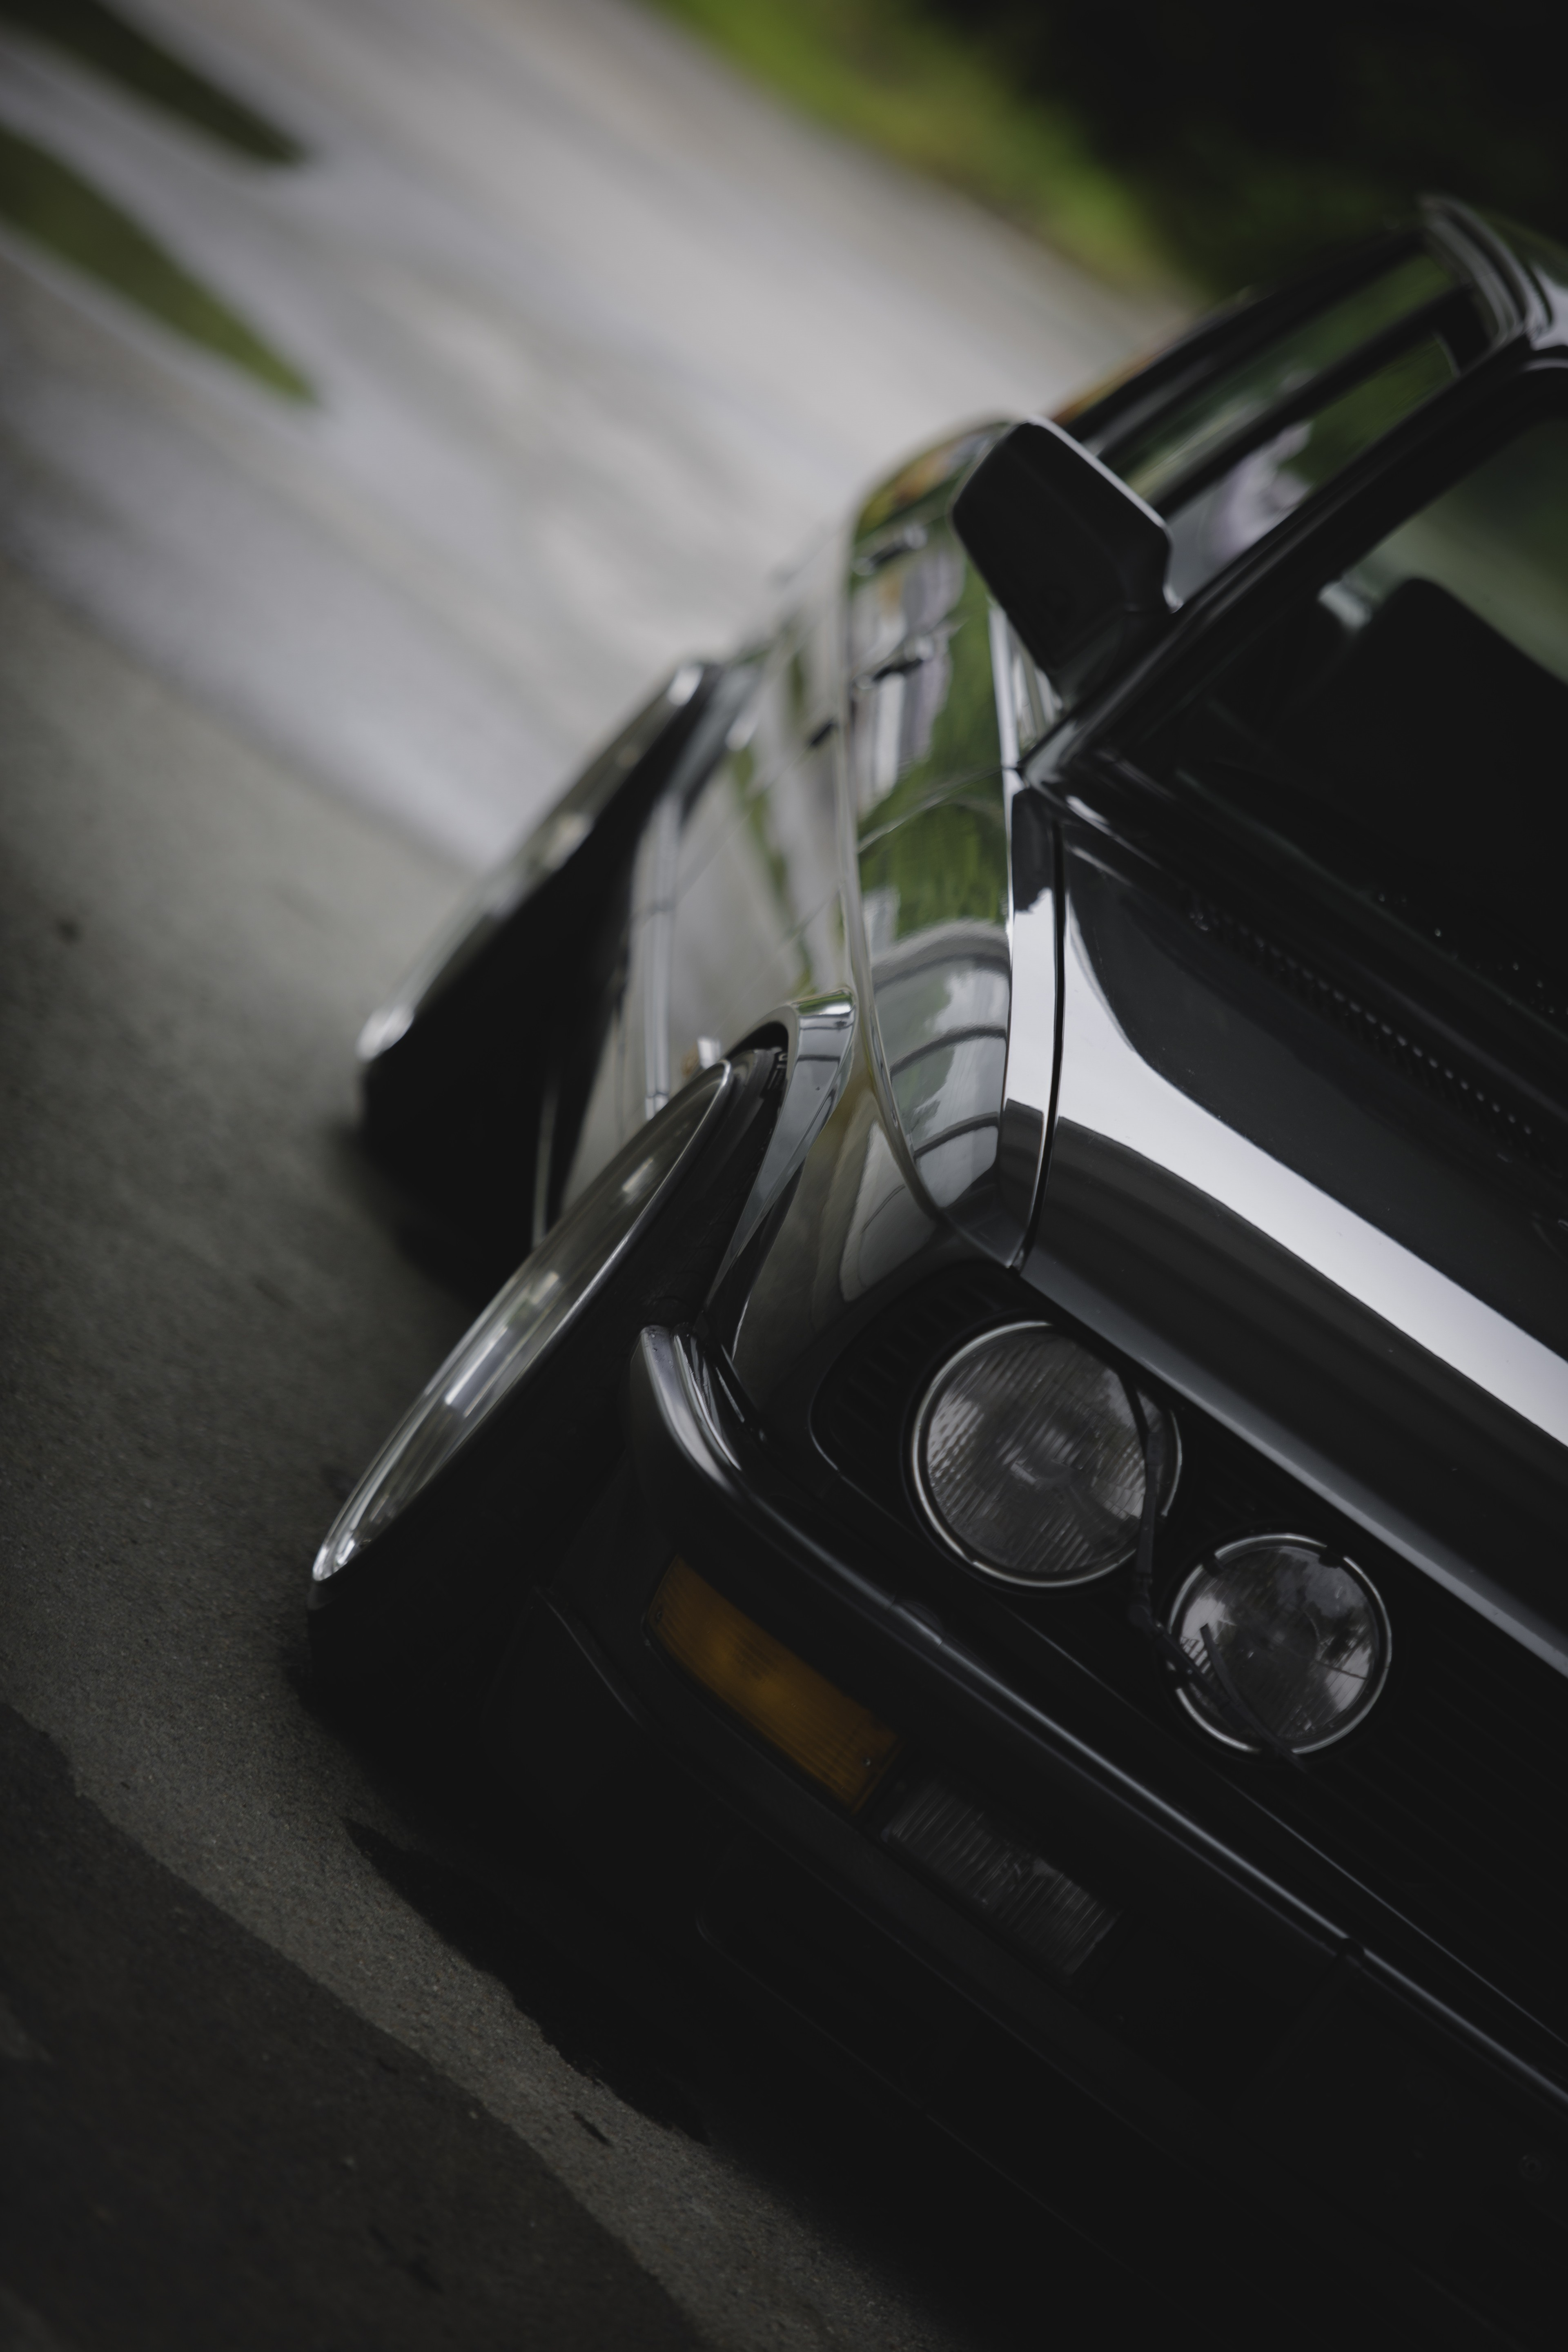 New 3d Wallpaper For Mobile Phone Bmw E28 Car German Cars Stance Static Stanceworks